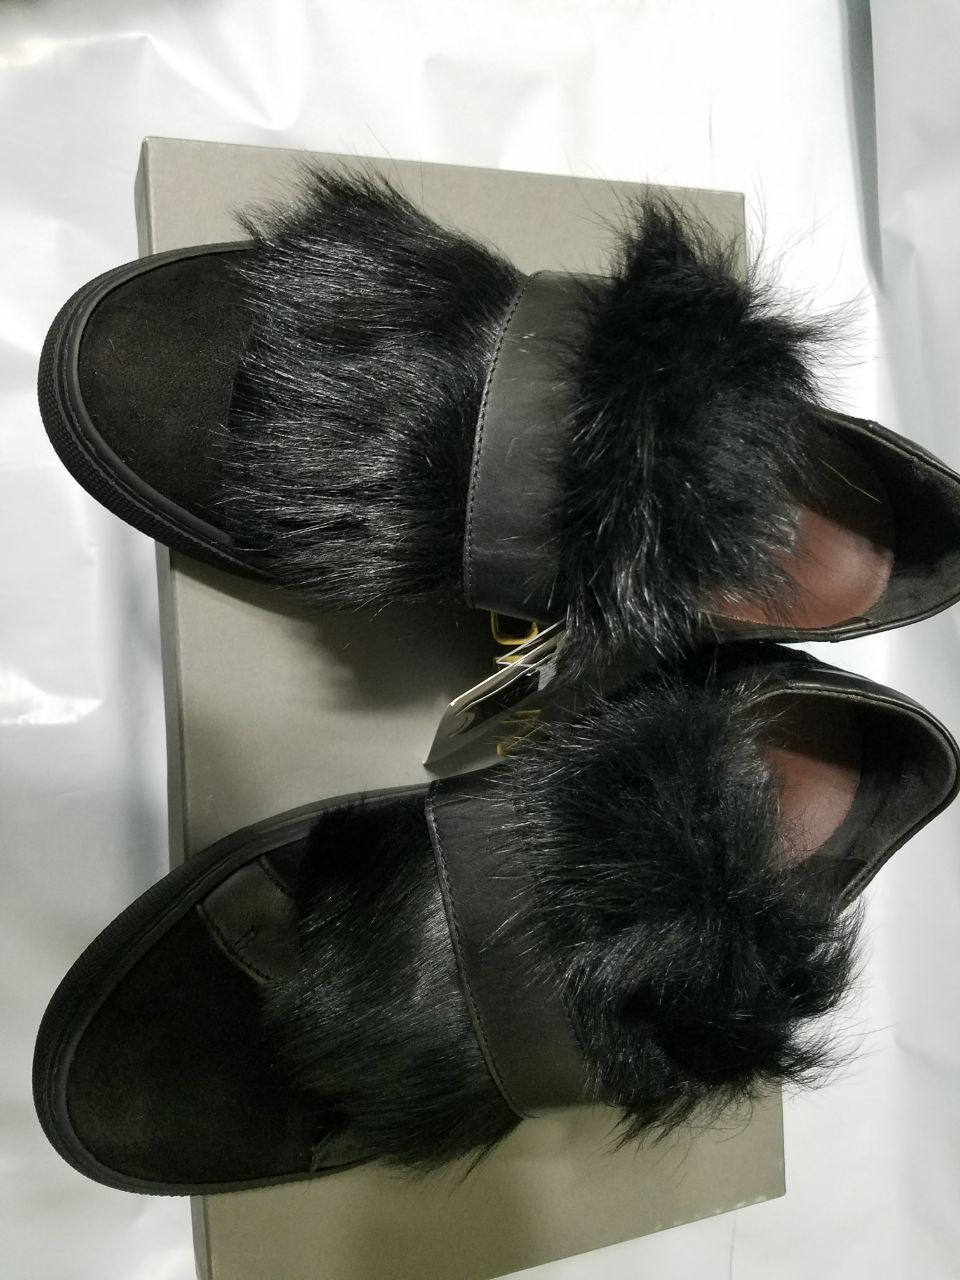 New in Box BOEMOS baskets shearlin Noir Taille Taille Taille 6 178938 MADE IN ITALY bf875d